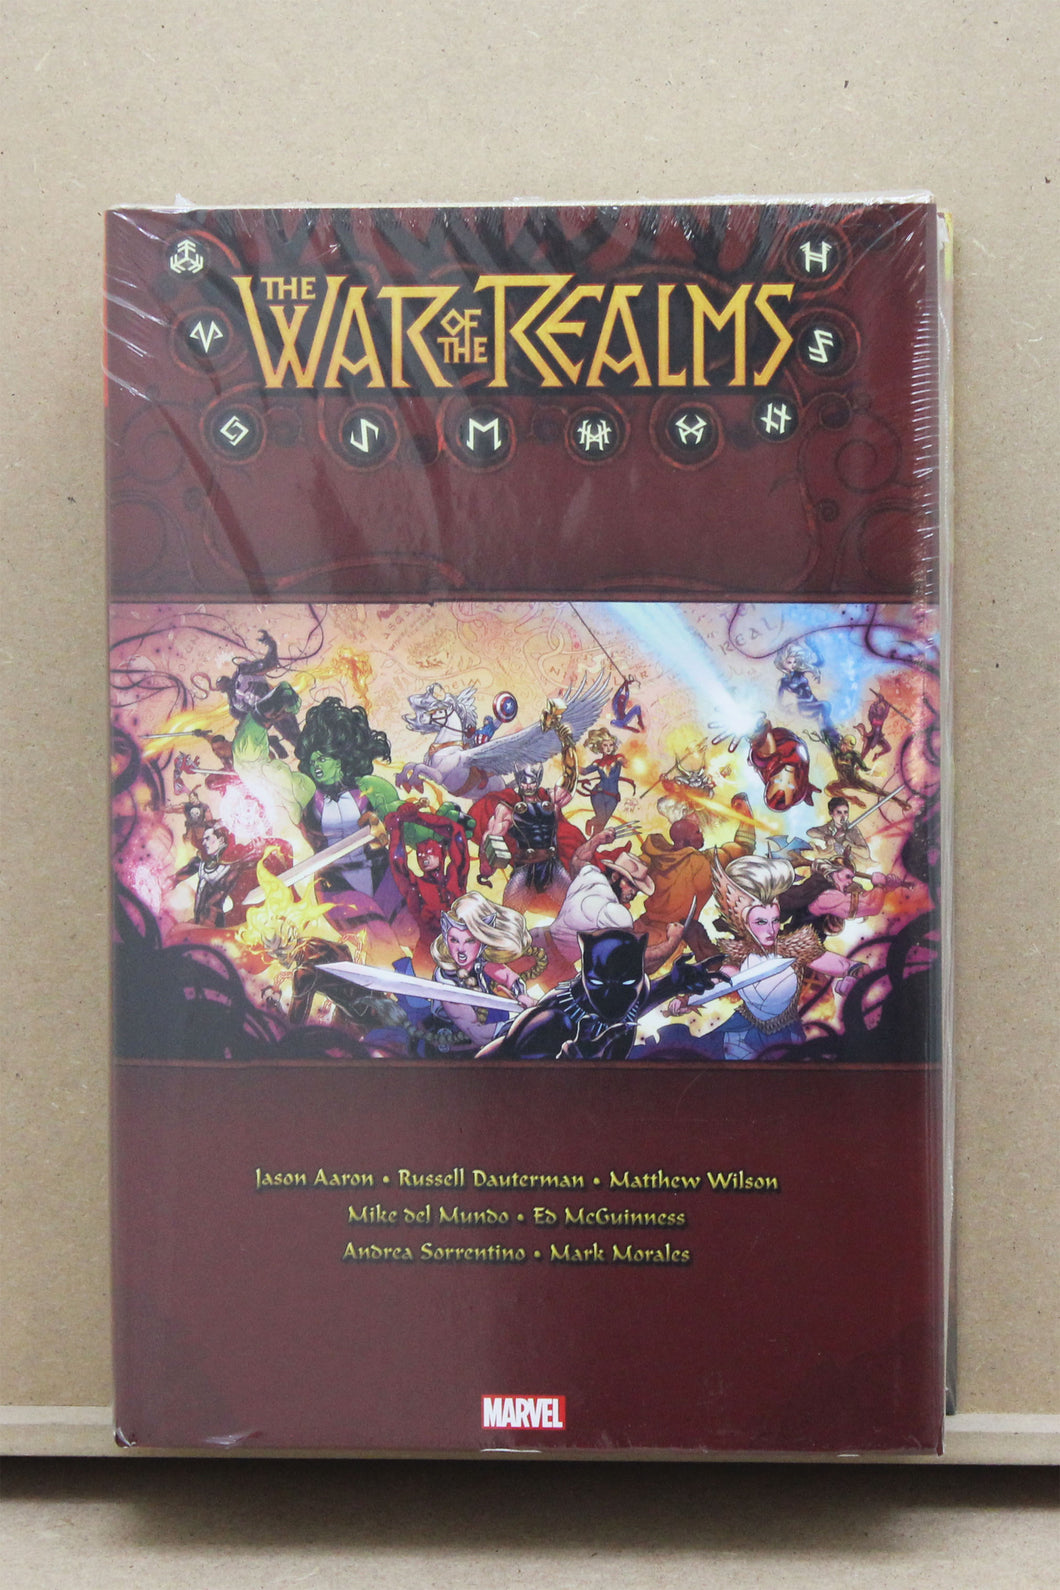 The War of the Realms Omnibus